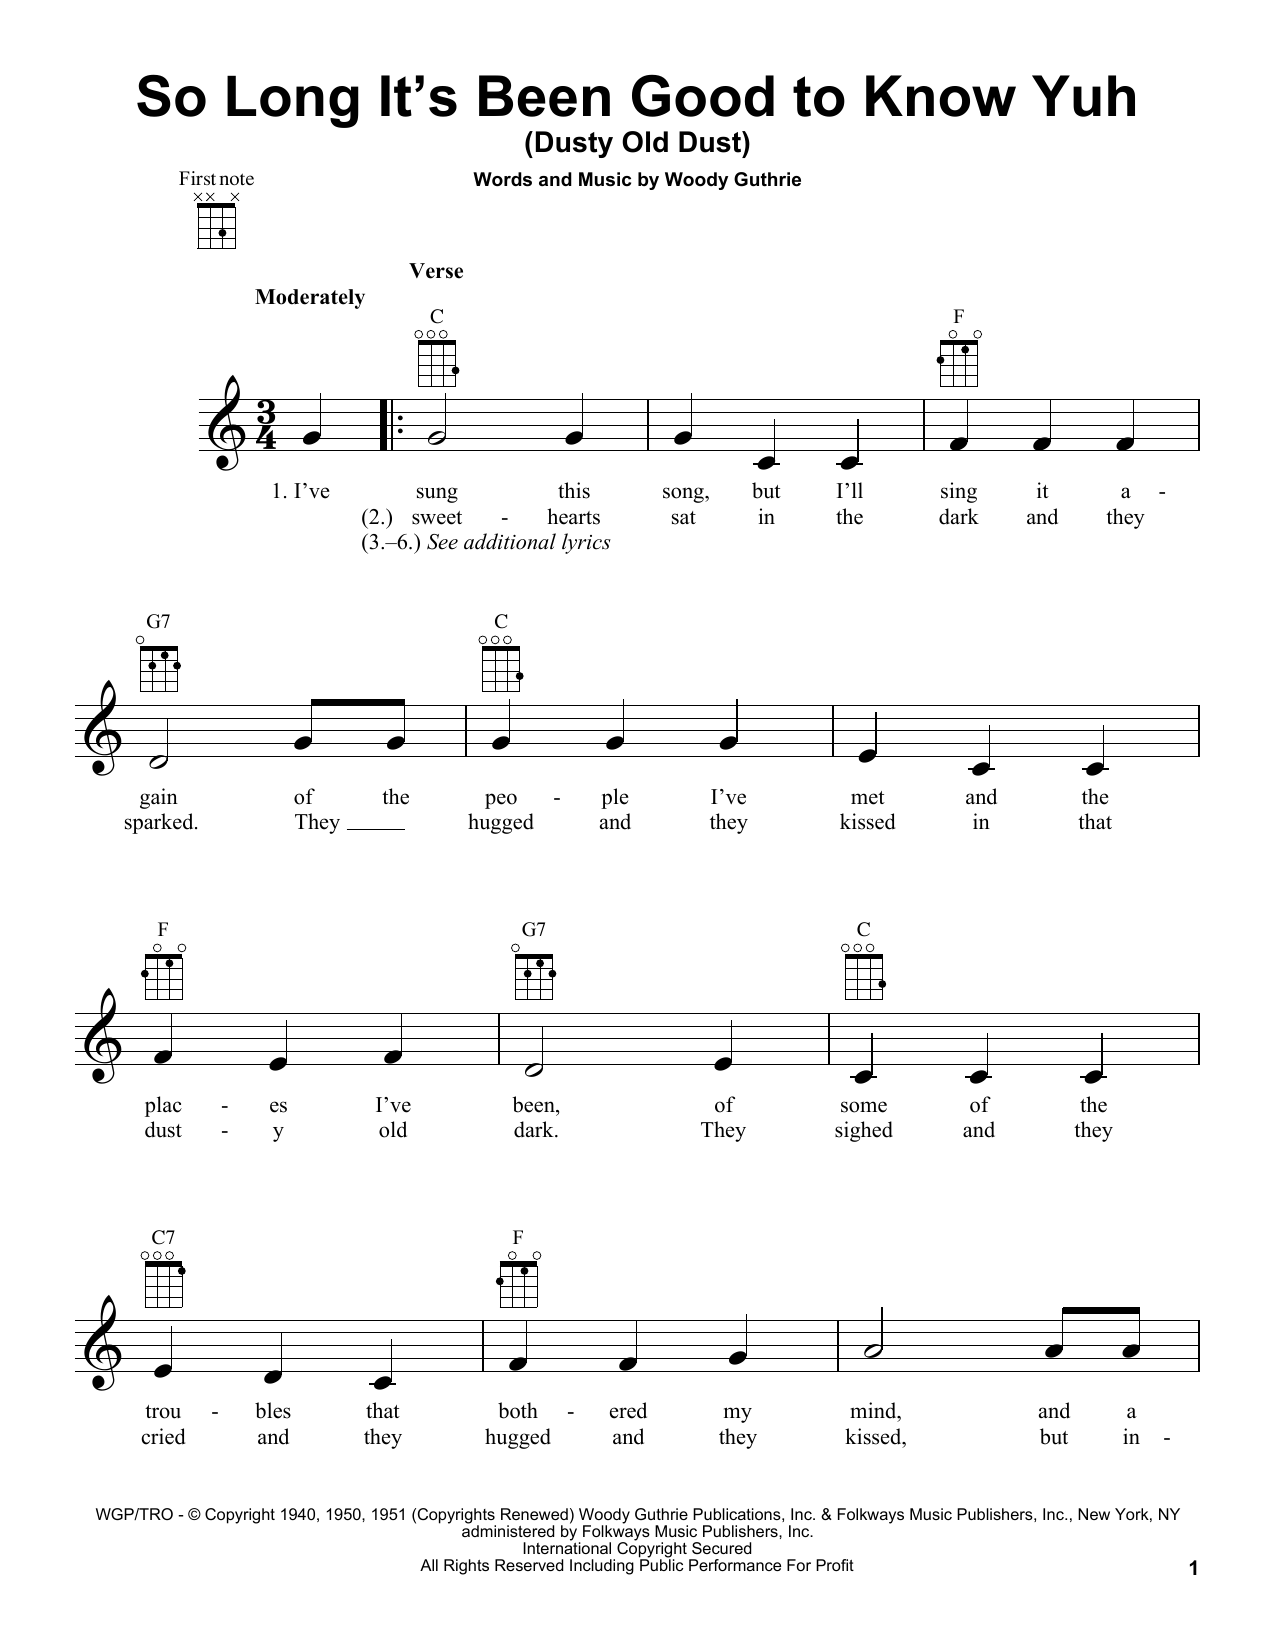 Tablature guitare So Long It's Been Good To Know Yuh (Dusty Old Dust) de Woody Guthrie - Ukulele